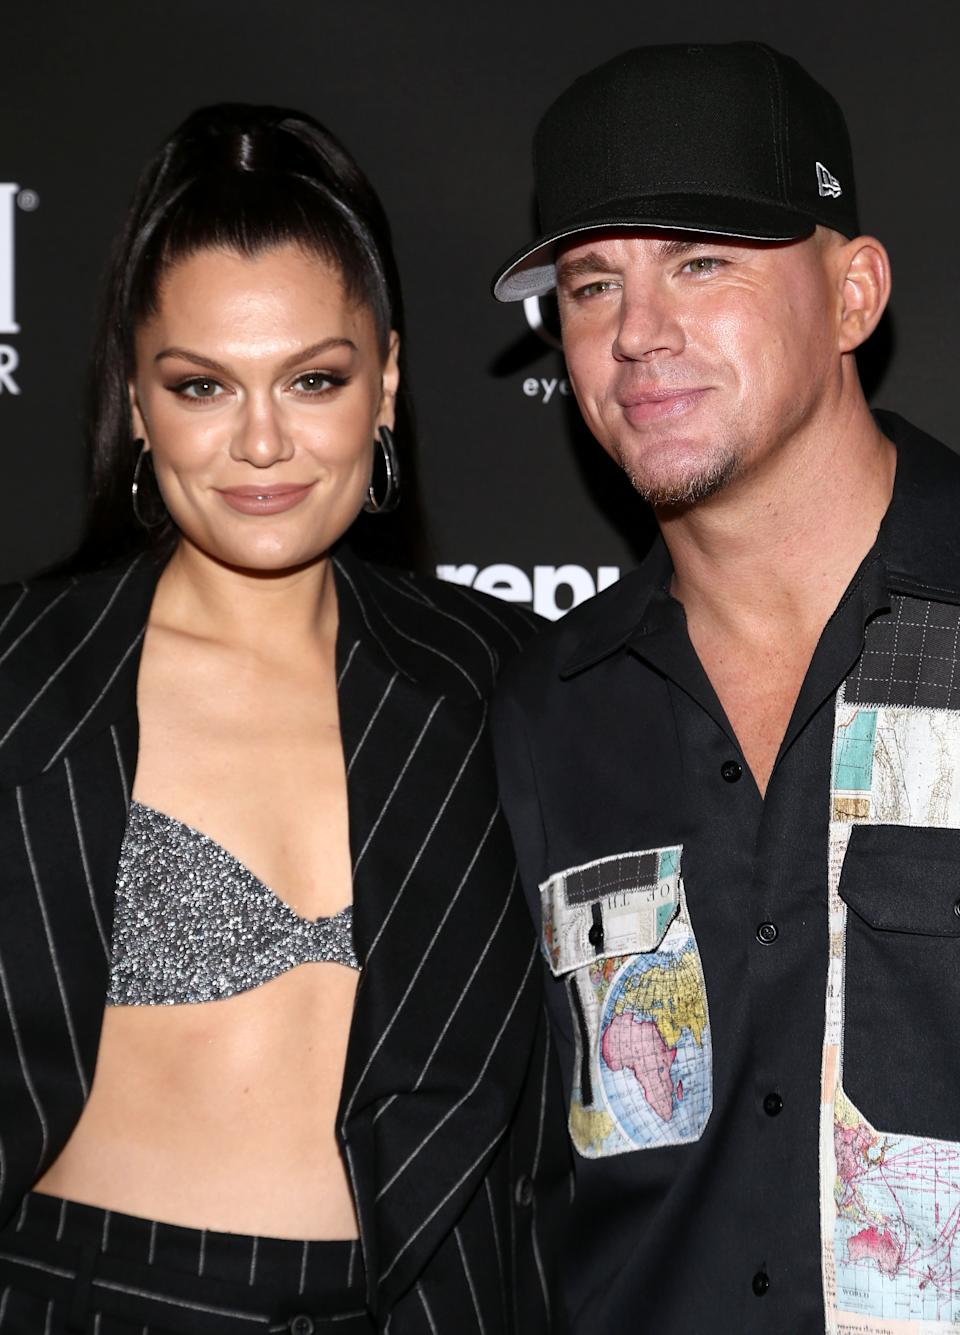 Jessie J and Channing Tatum pictured in January (Photo: Tommaso Boddi via Getty Images)